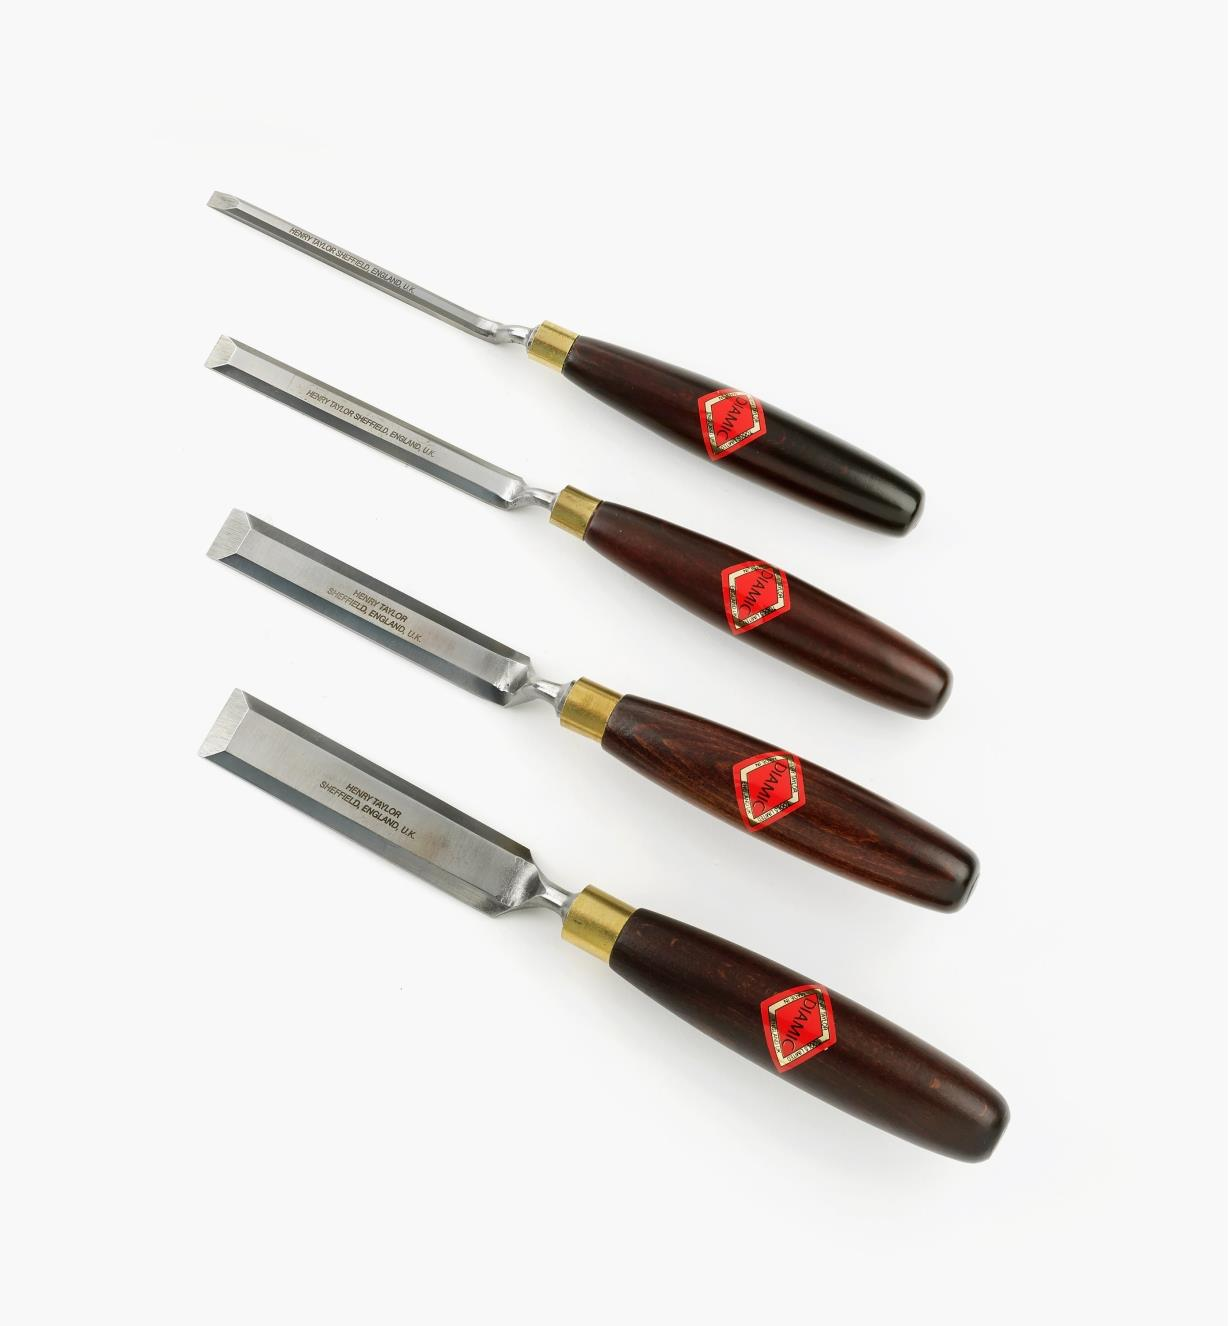 58S0810 - Set (4) Cranked-Neck Paring Chisels